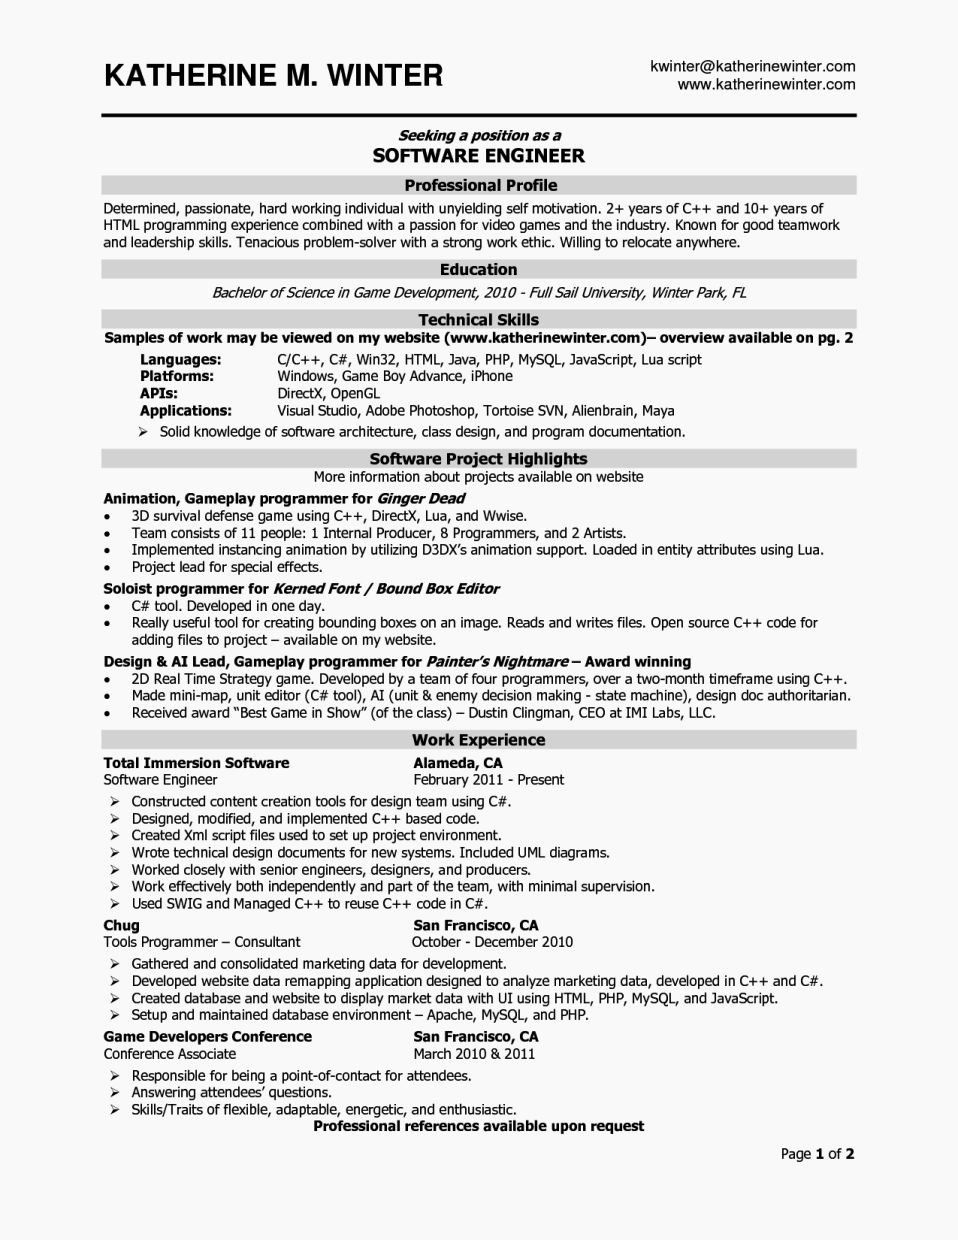 Inspirational experience resume format for software